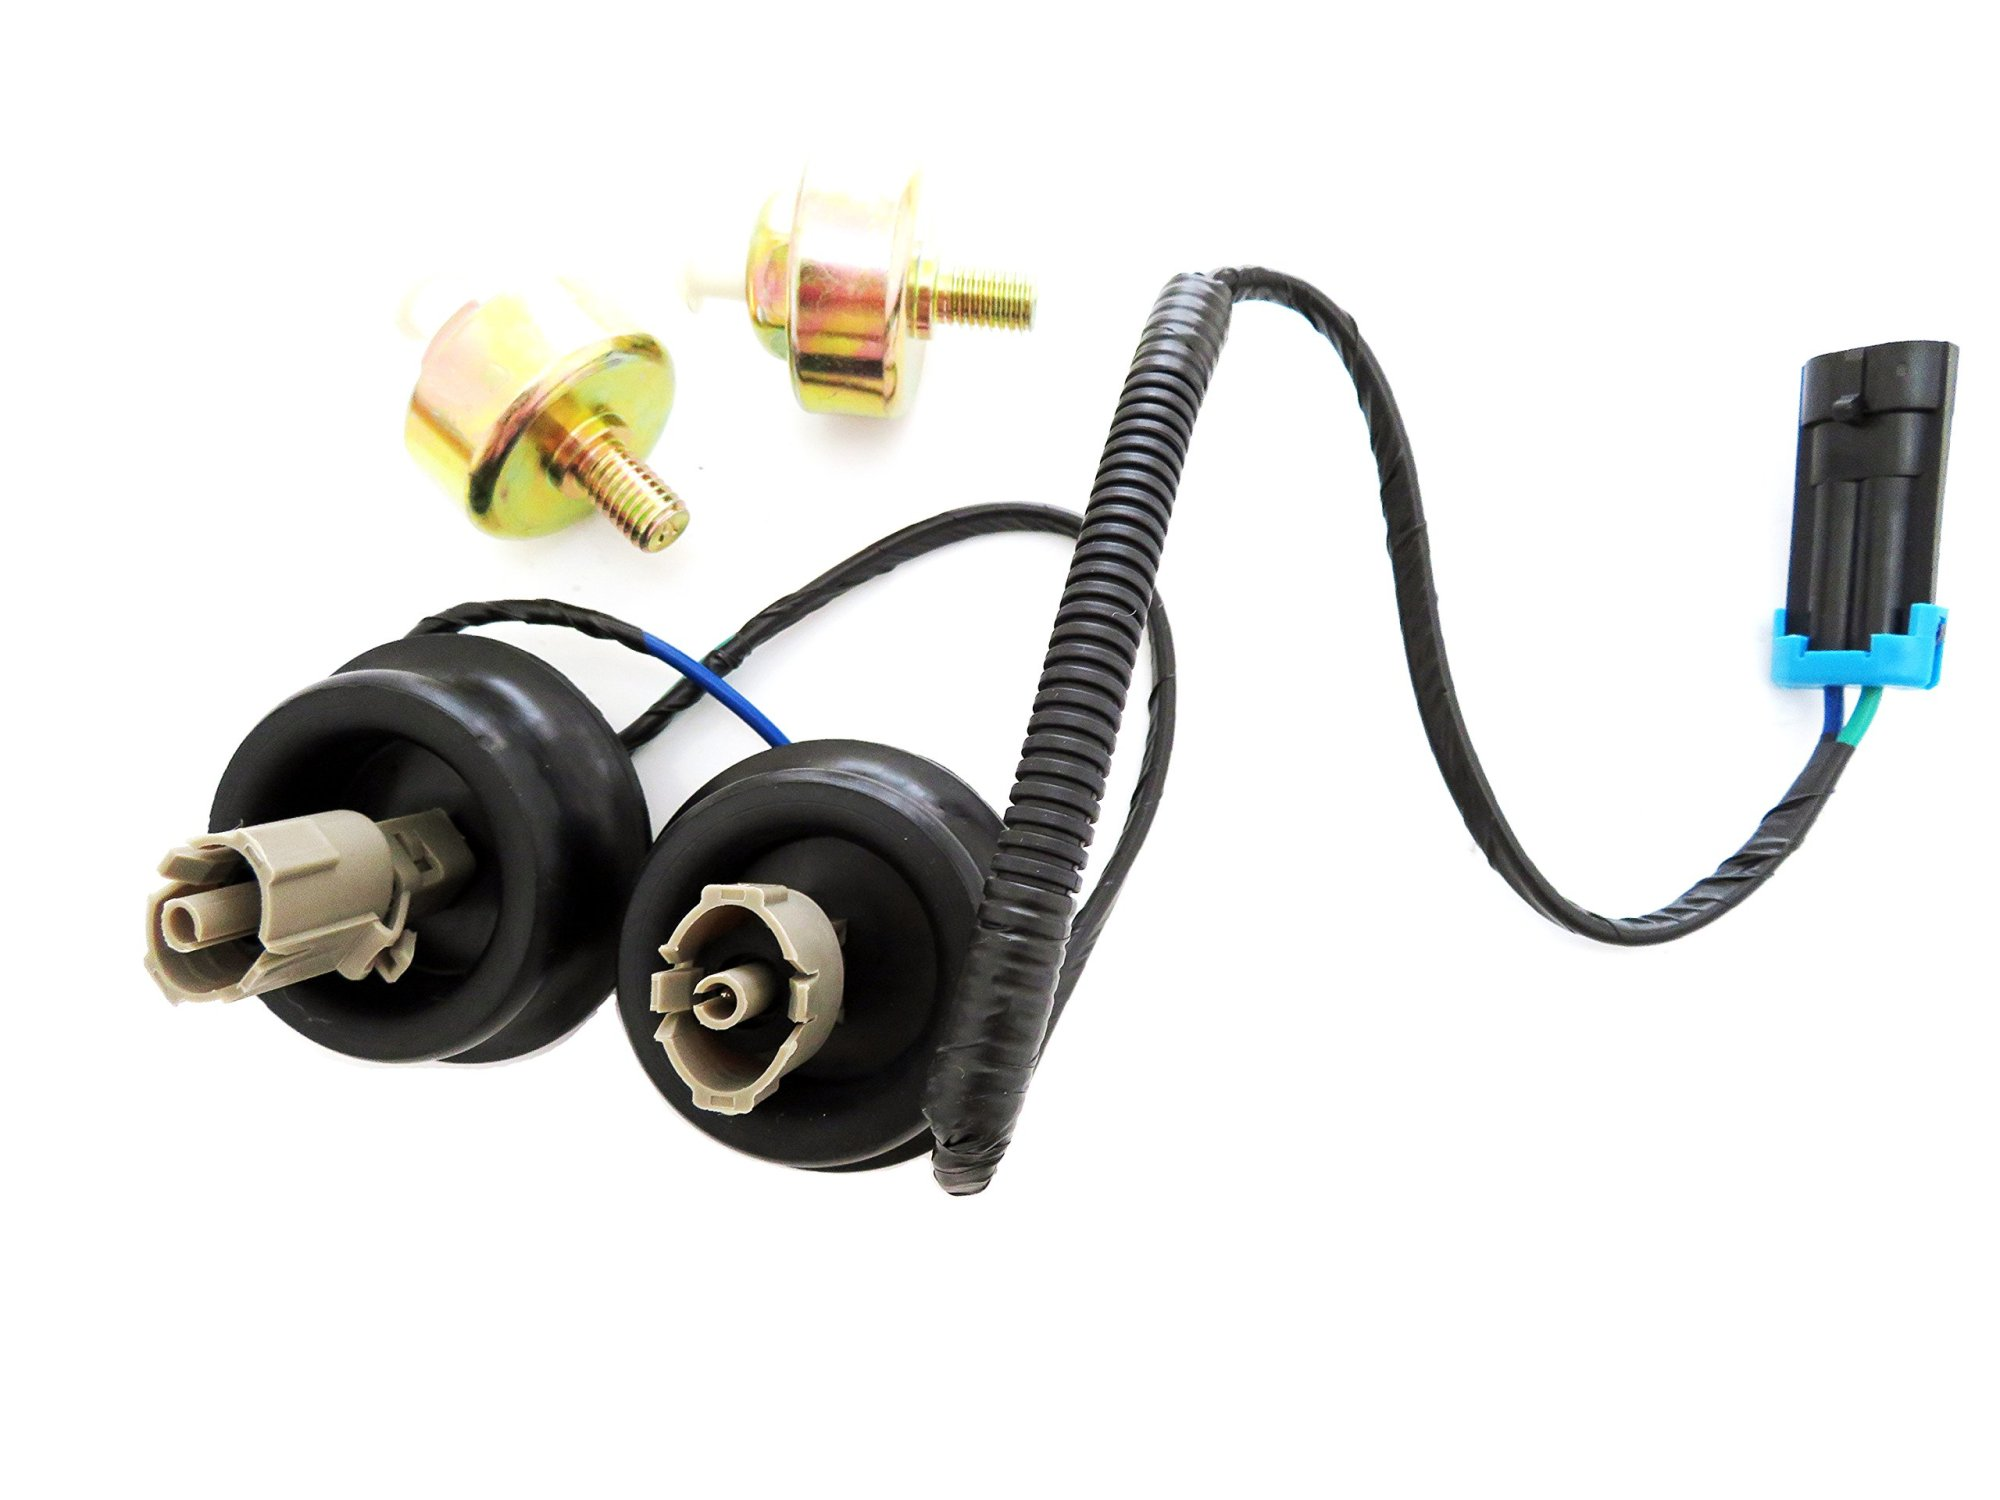 hight resolution of get quotations knock sensor with harness pair kit set for chevy gmc silverado sierra cadillac